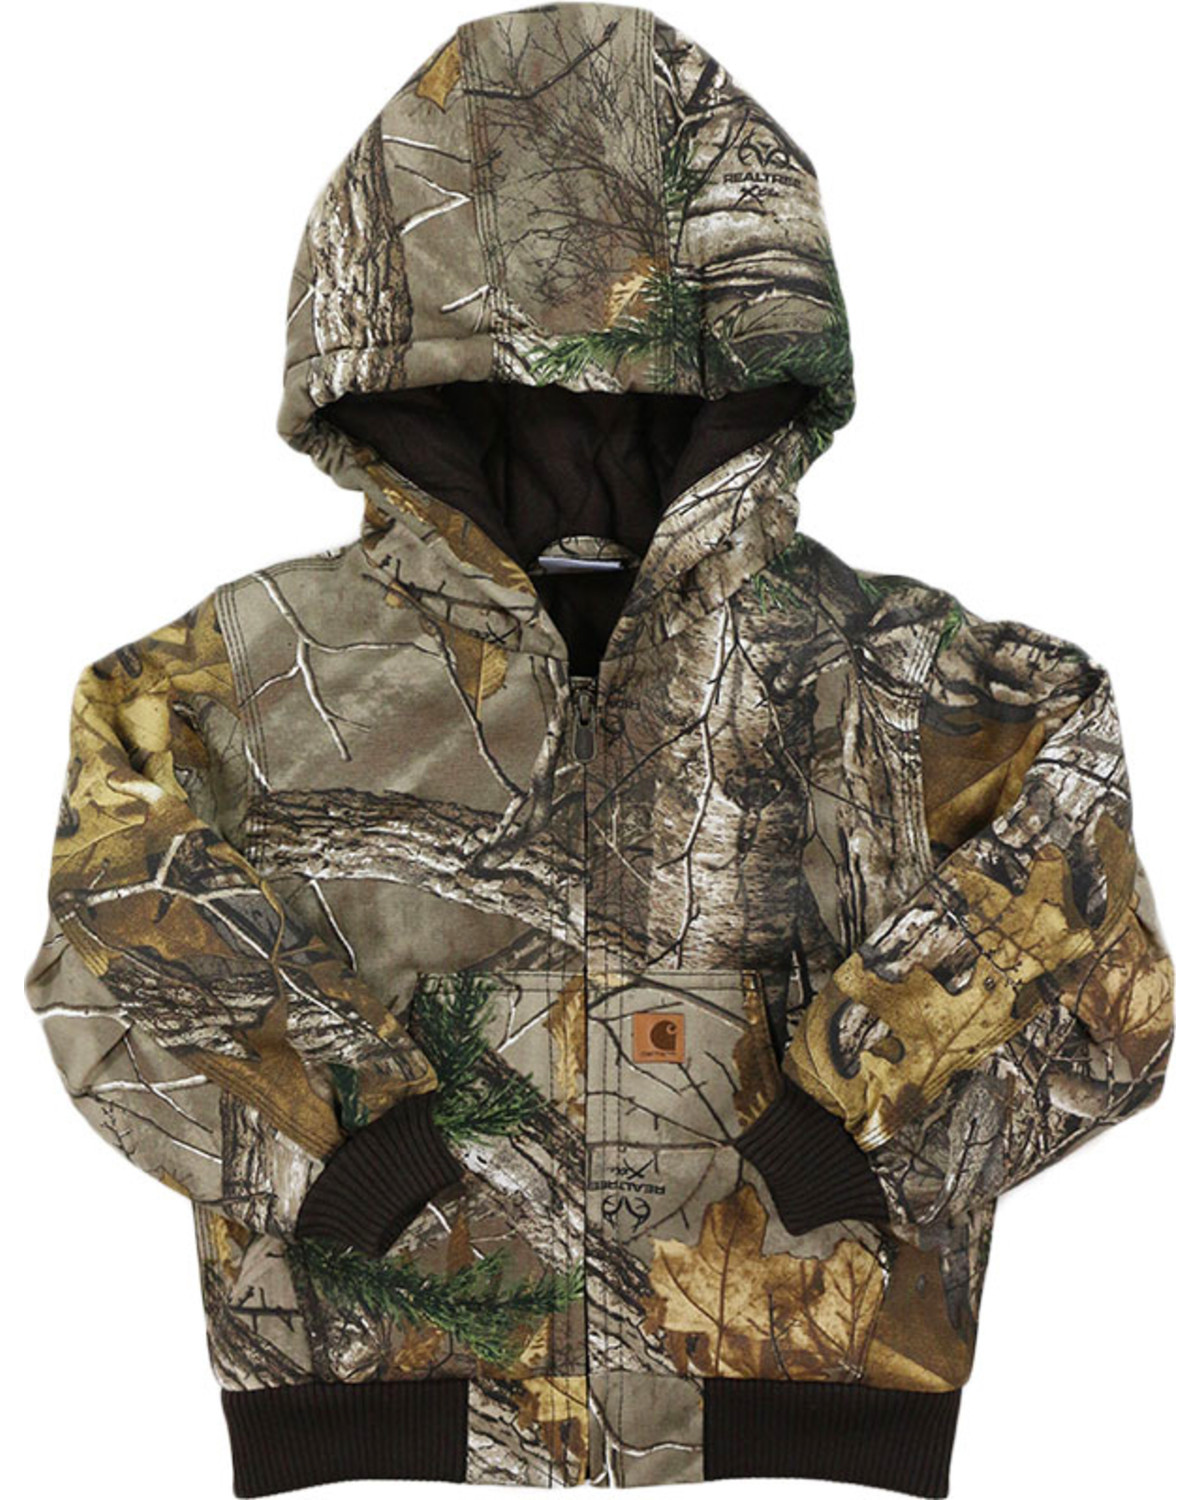 4aab50774eb8a Zoomed Image Carhartt Toddler's Realtree Xtra Camo Jacket, Brown, ...